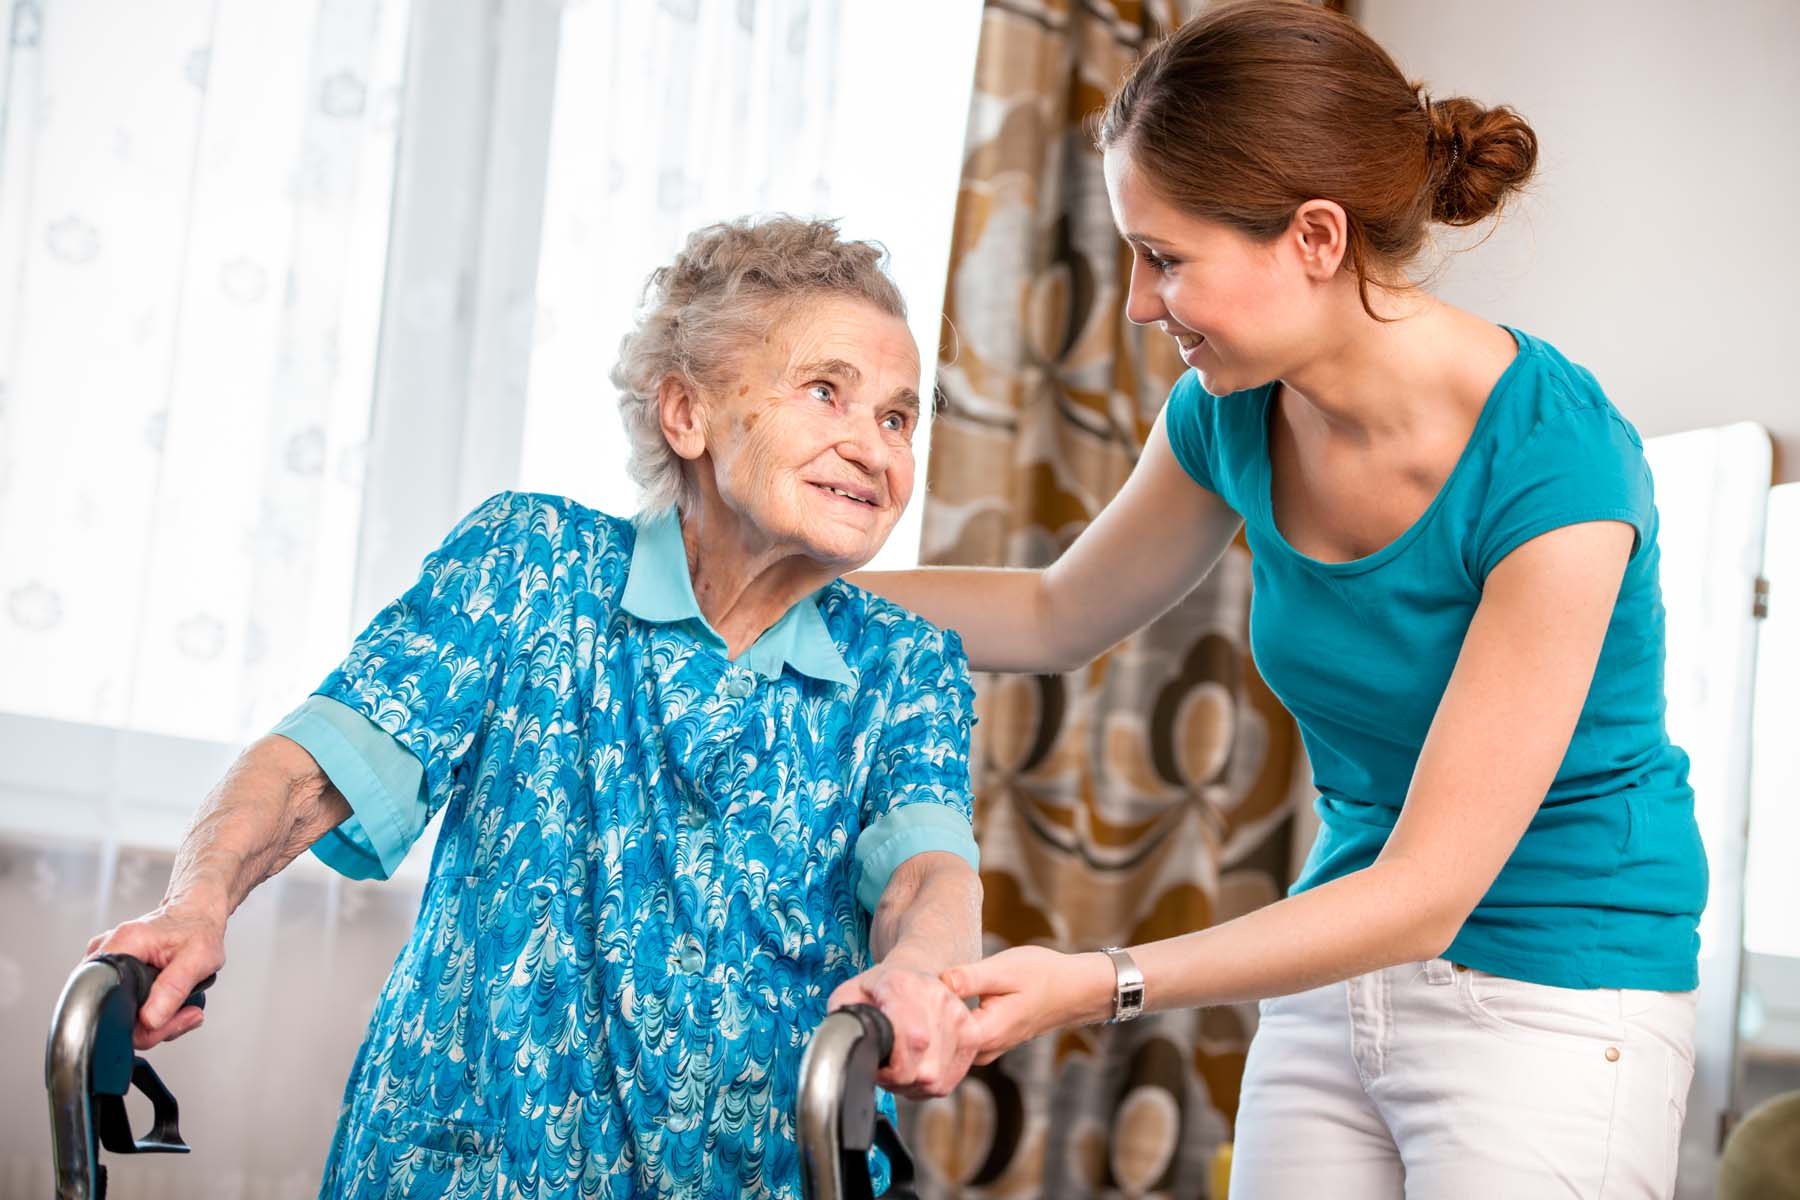 Join CaregiverAsia to monetize and optimize your free time